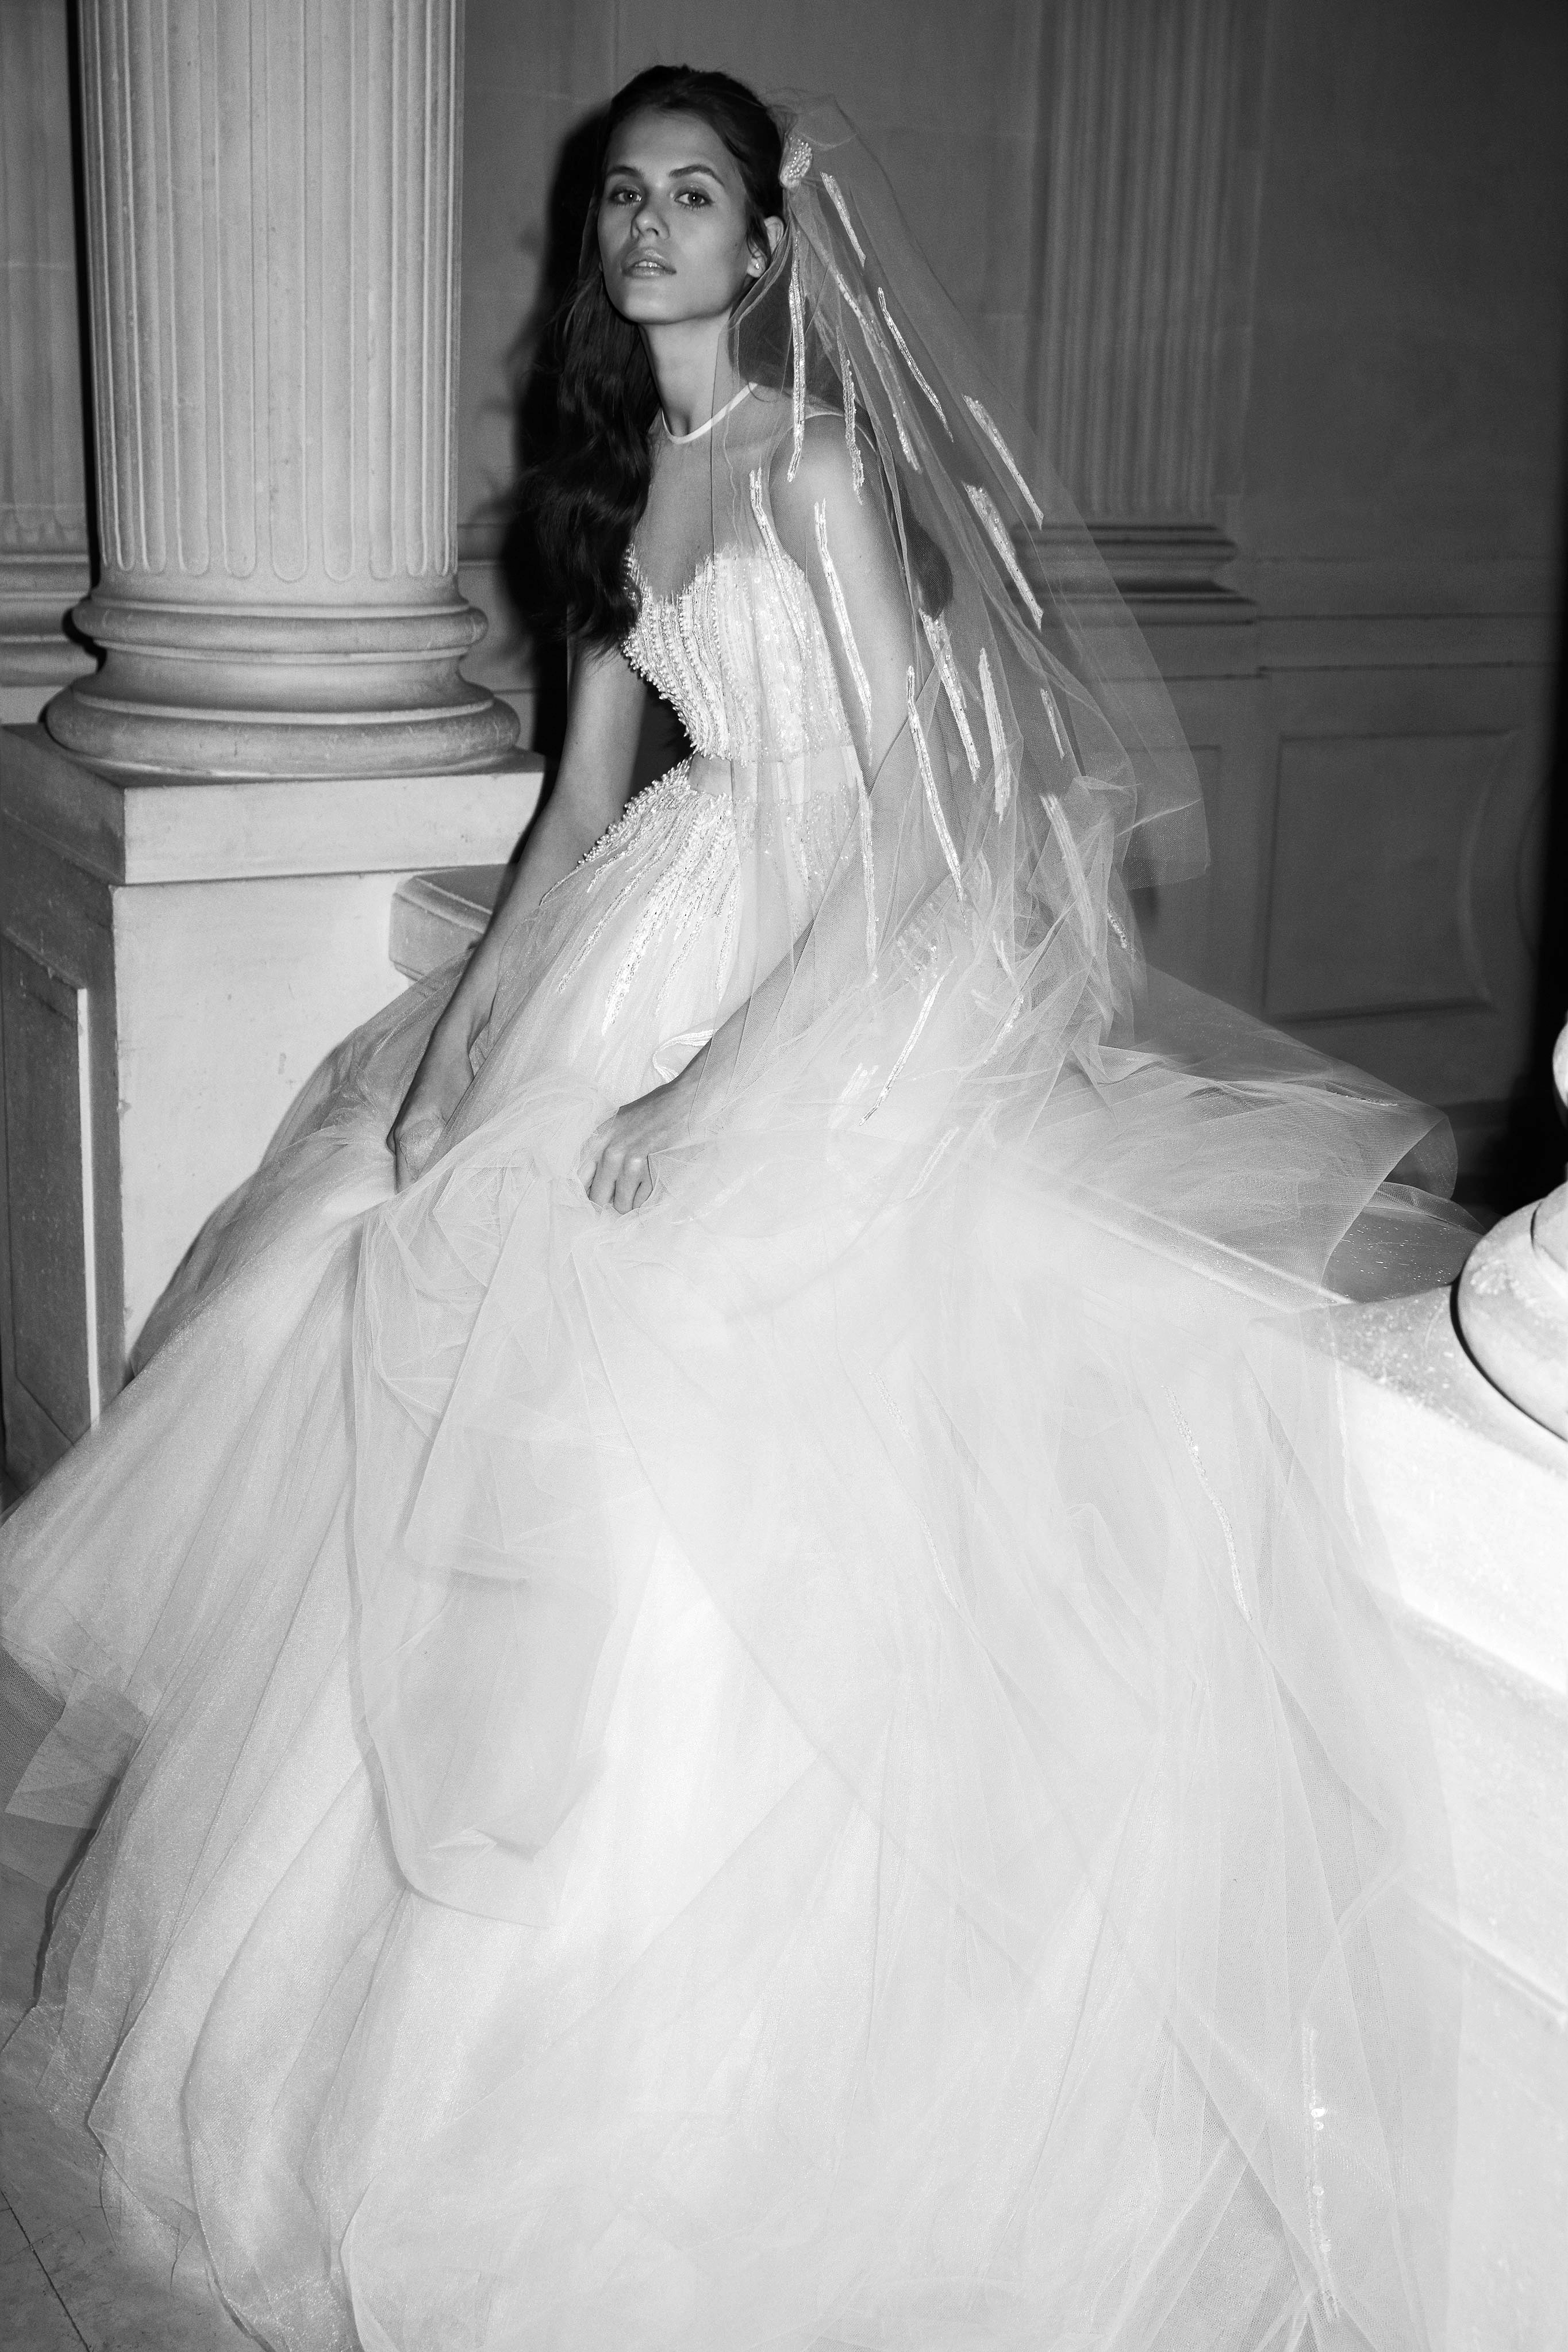 elie saab wedding dress spring 2019 ball gown tulle illusion sleeveless